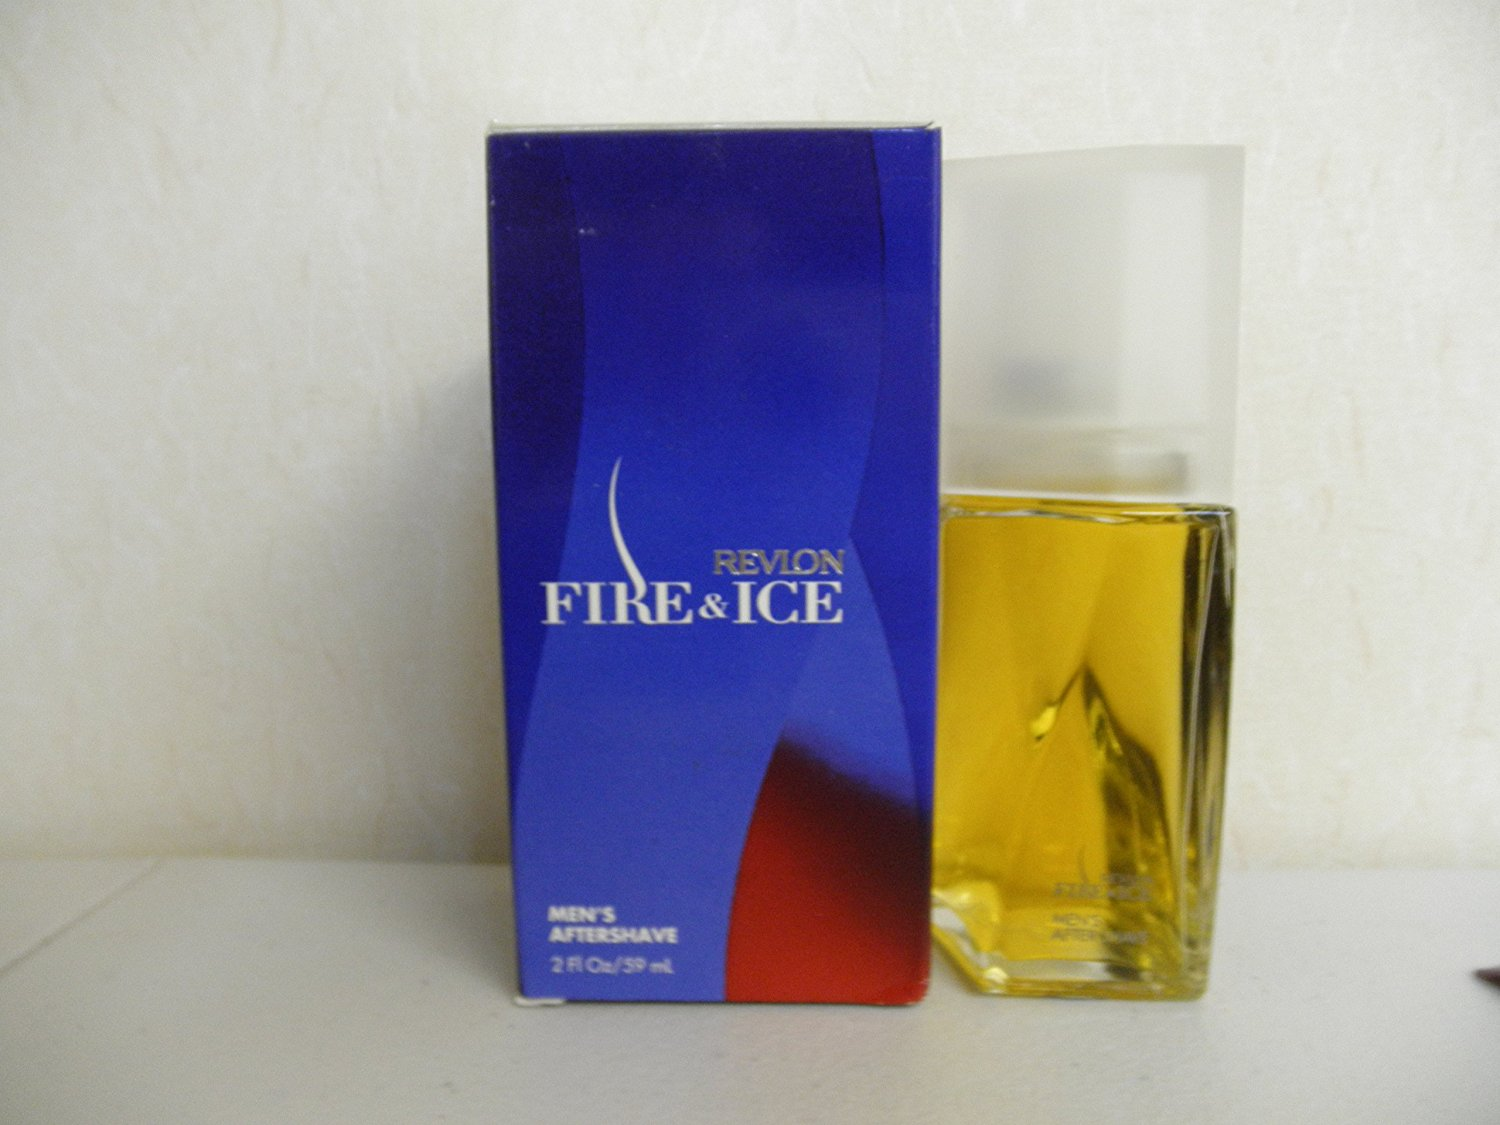 Fire & Ice Mens Aftershave 2oz